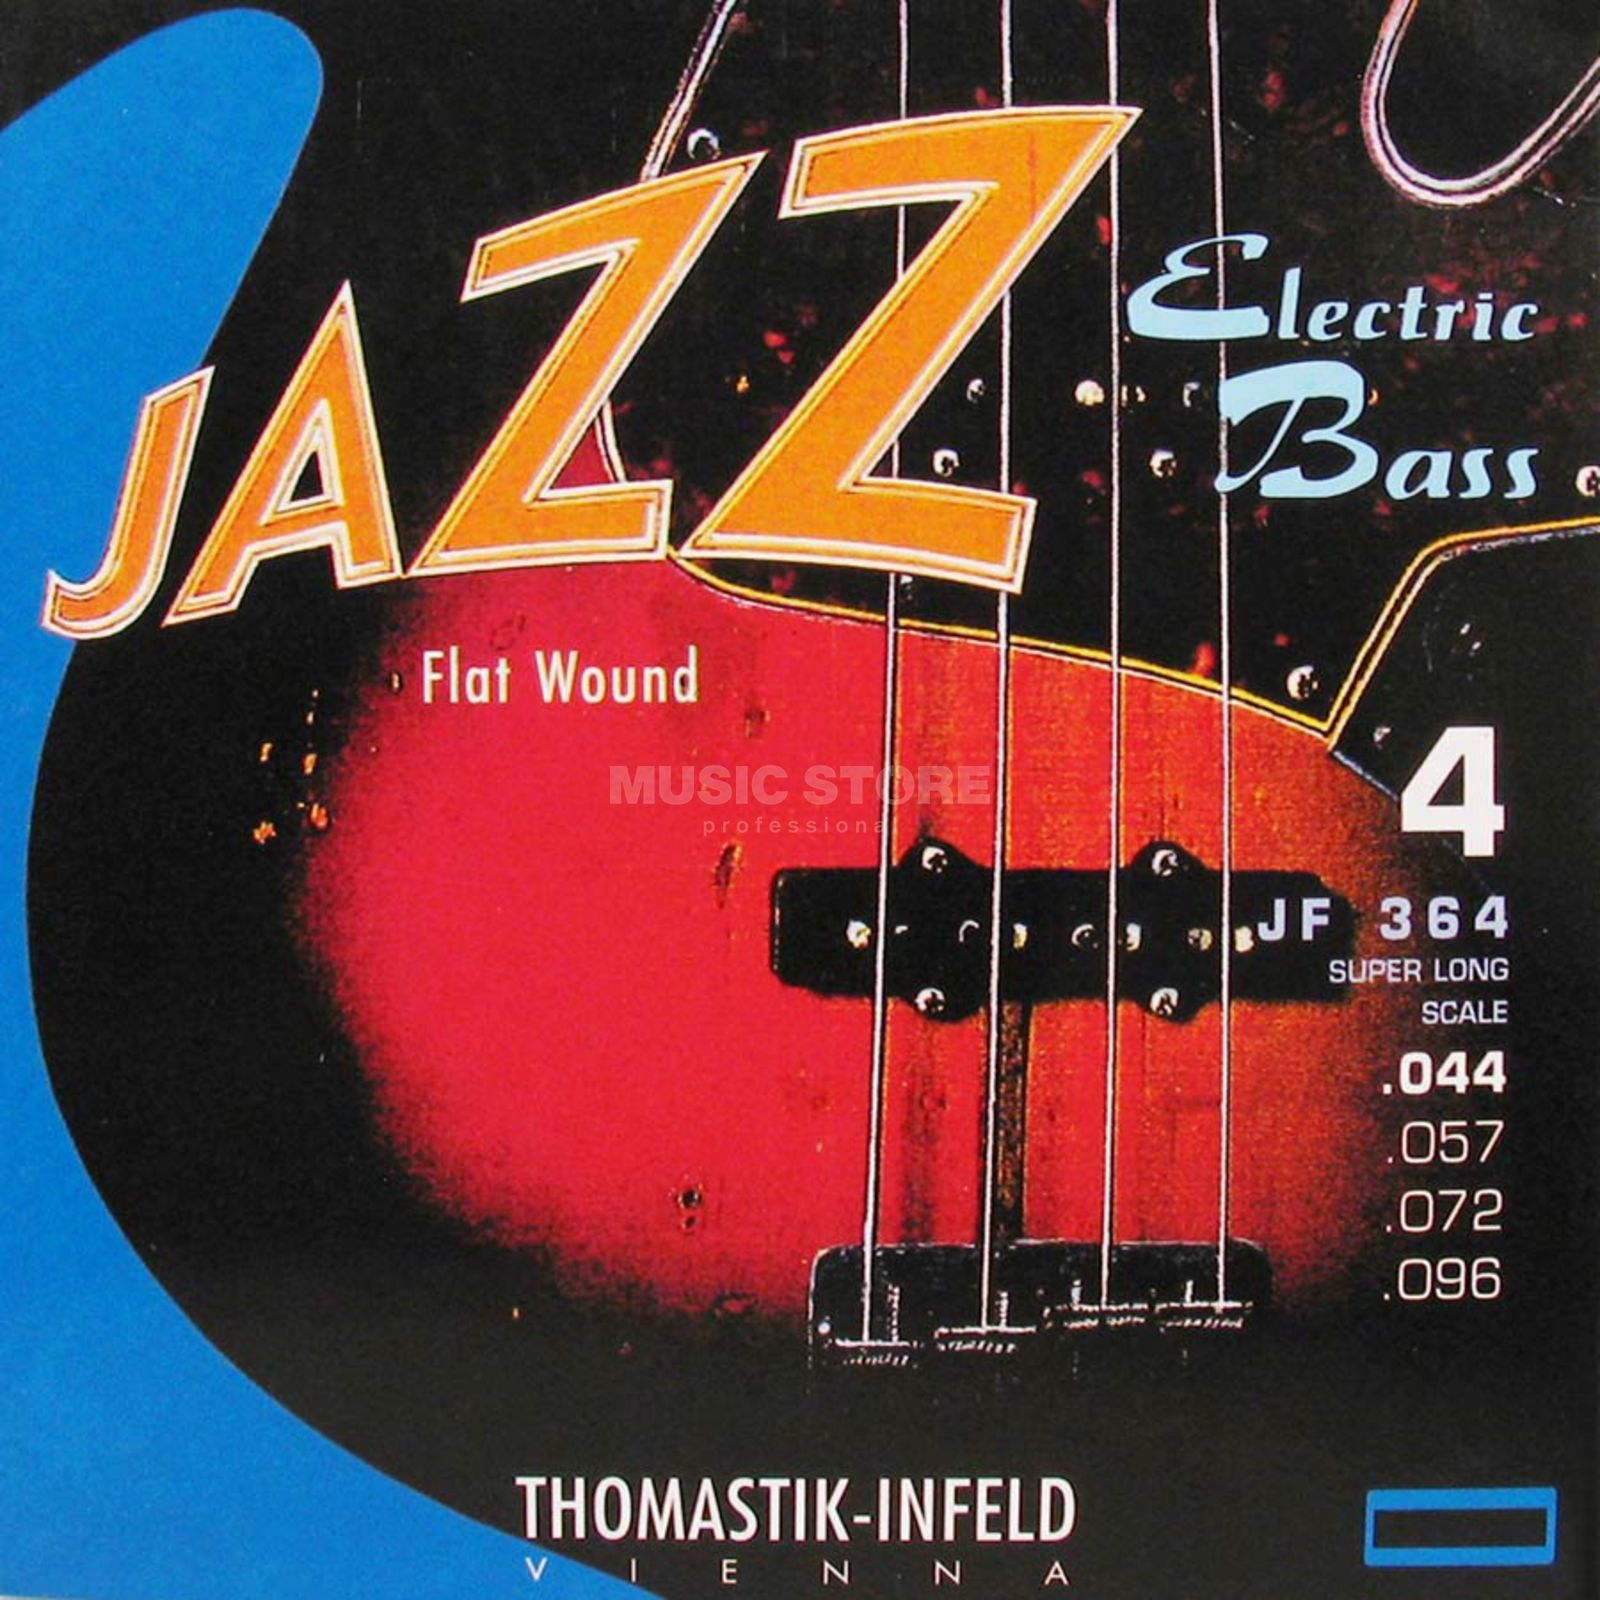 Thomastik 4 Bass Strings JF 364 44-96 Nickel Flat Wound Produktbillede